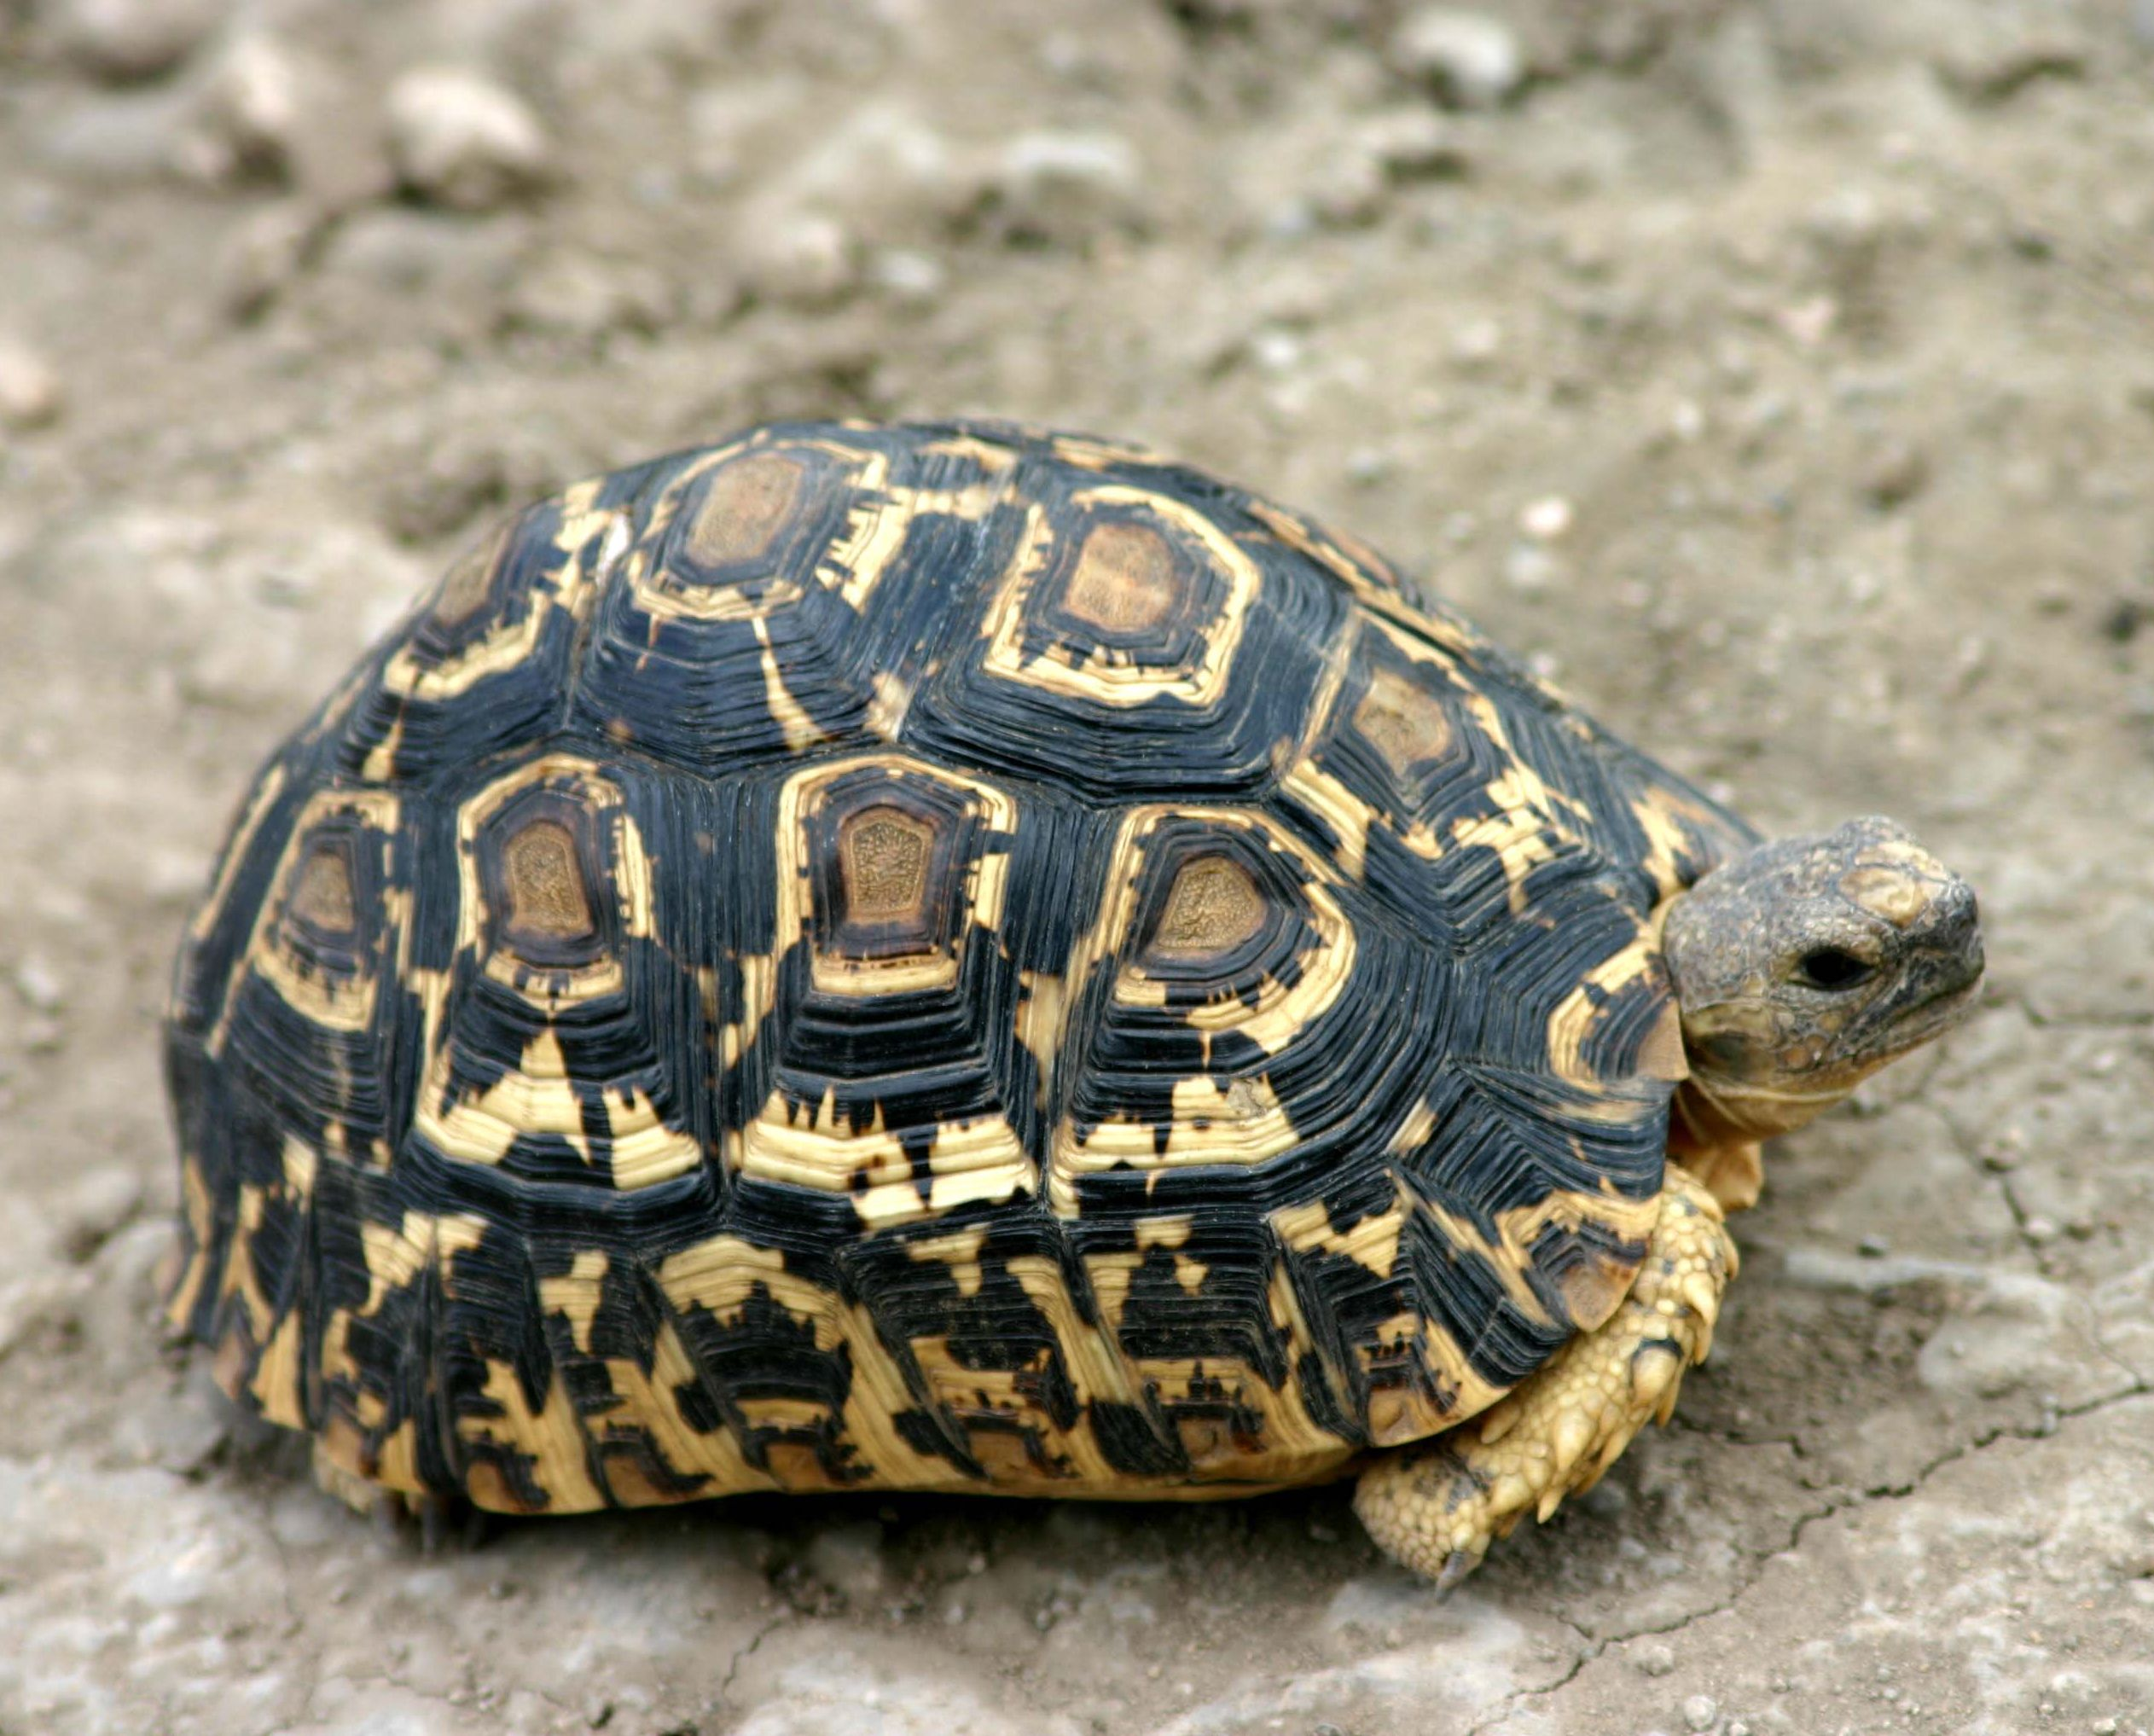 Nice Images Collection: Leopard Tortoise Desktop Wallpapers